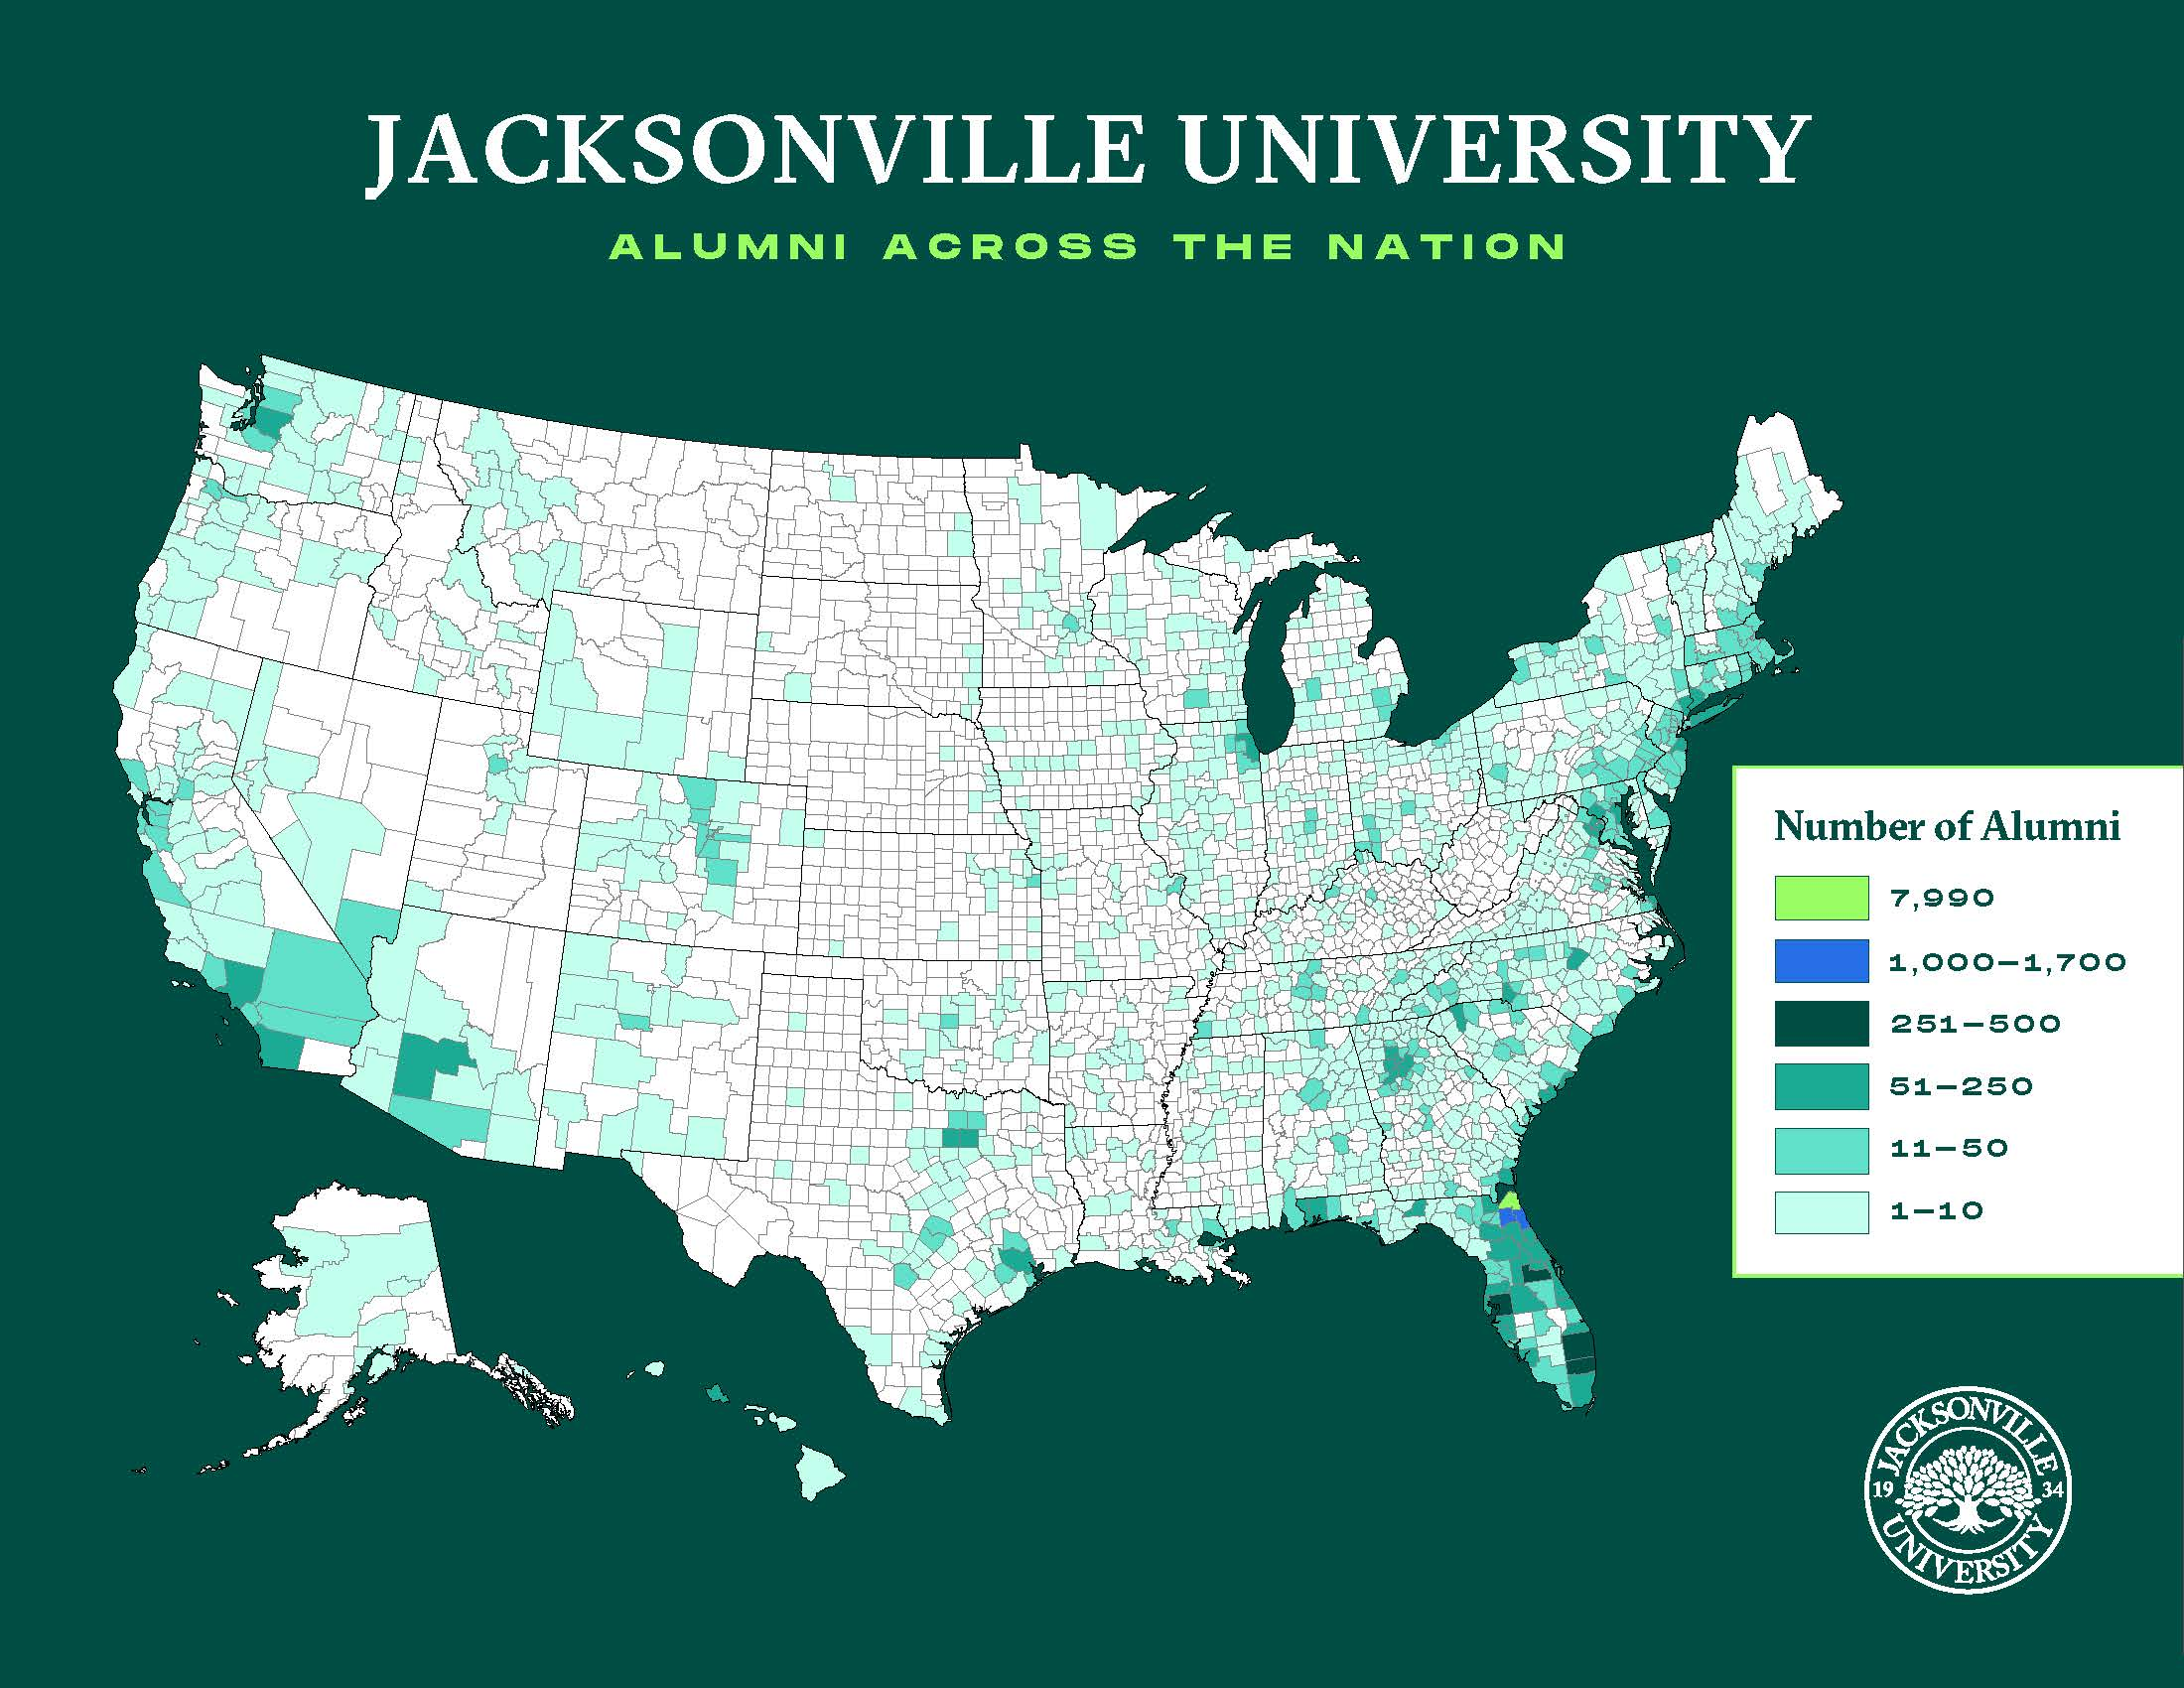 Alumni Heat Map in the USA